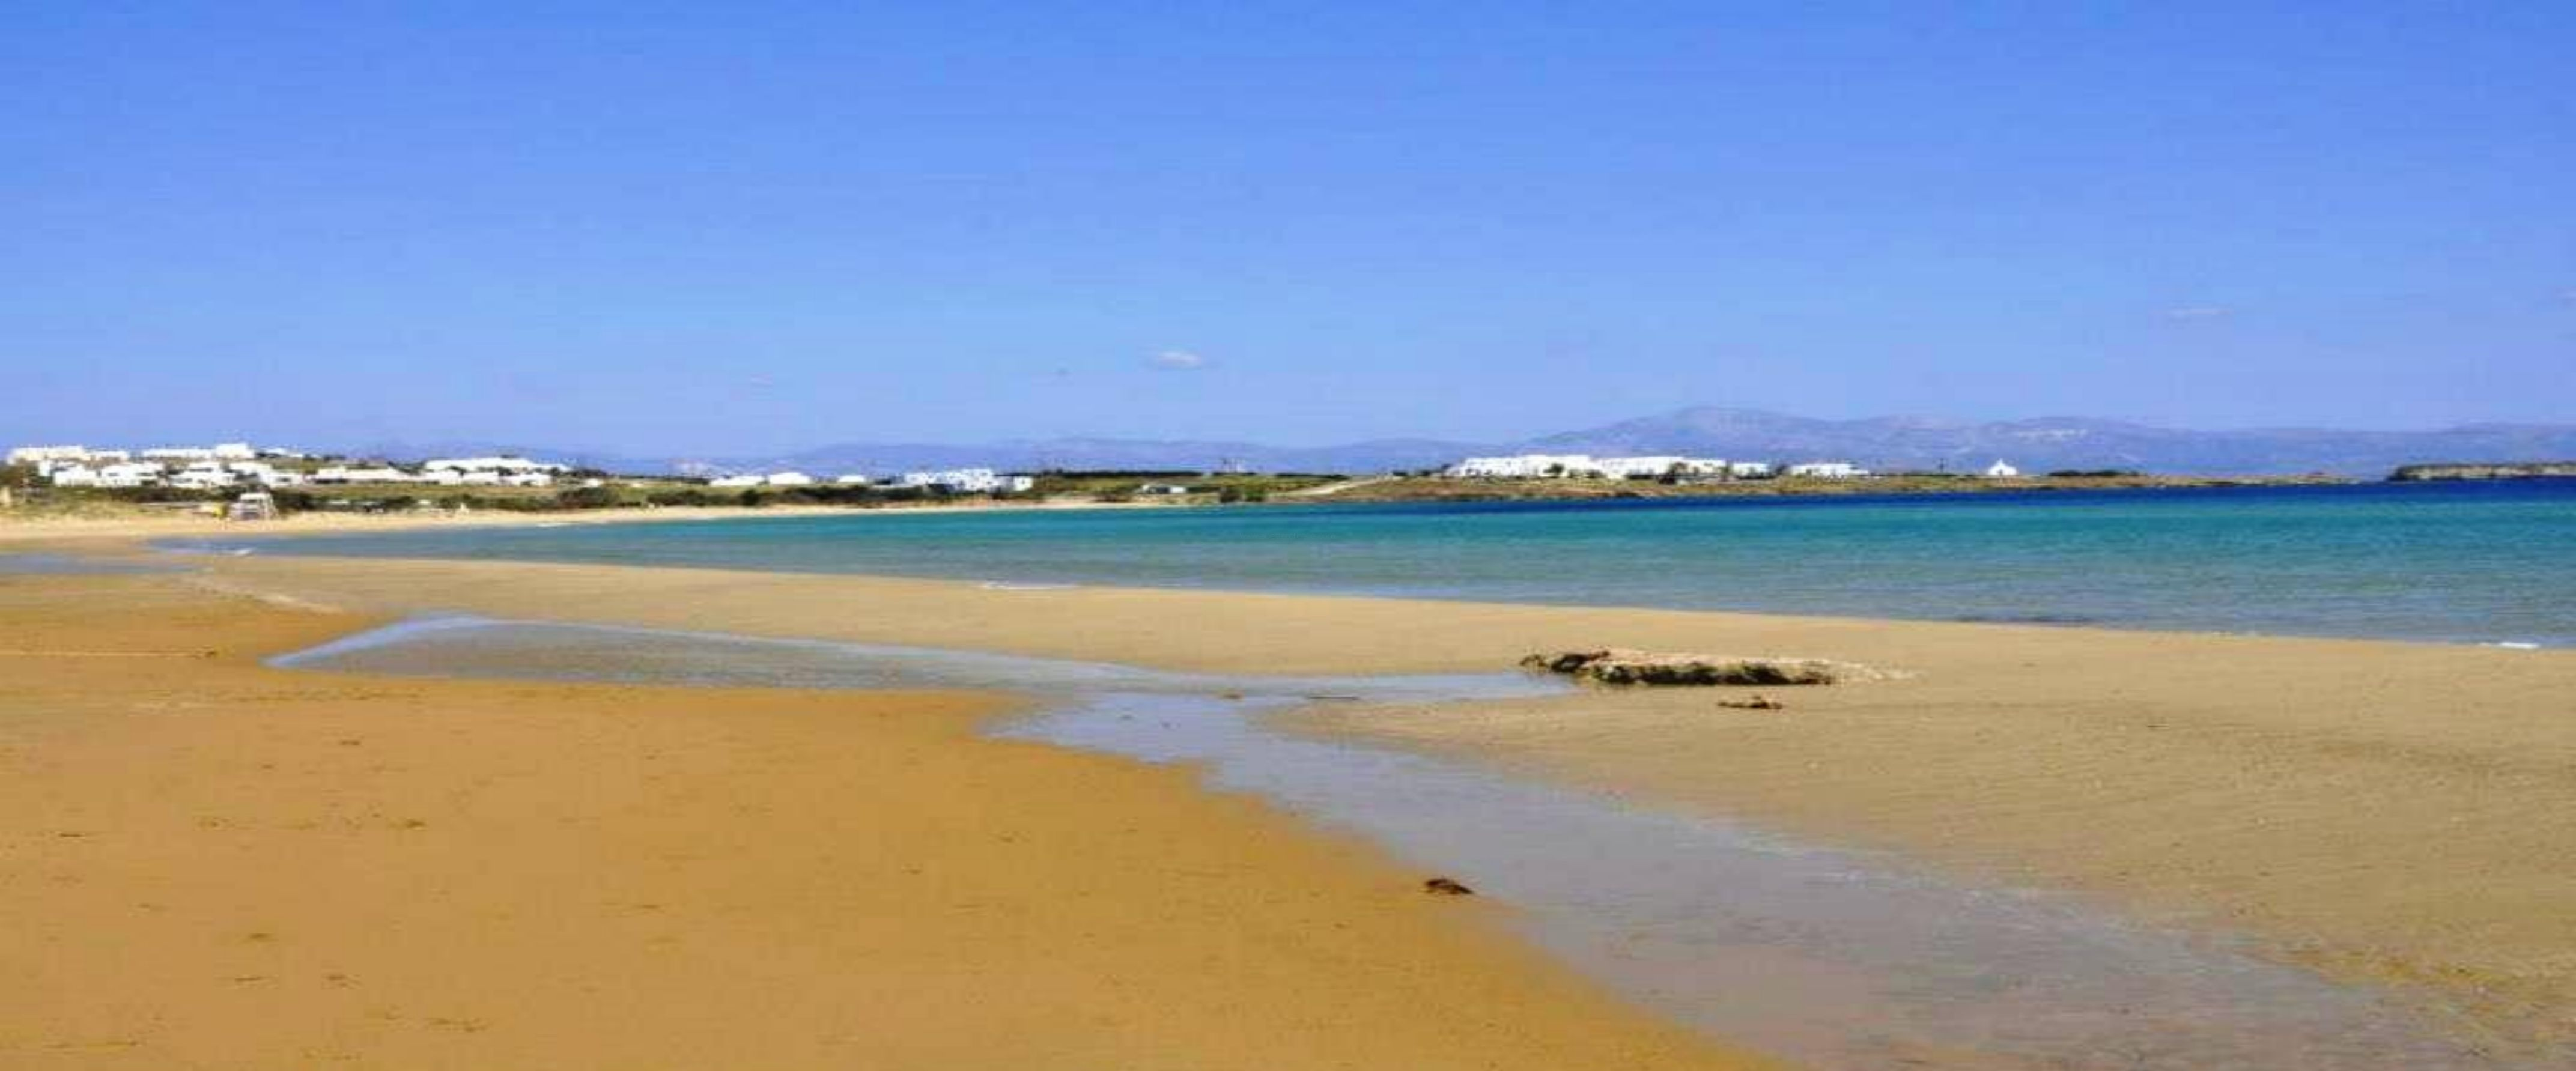 beaches_on_Paros_Island